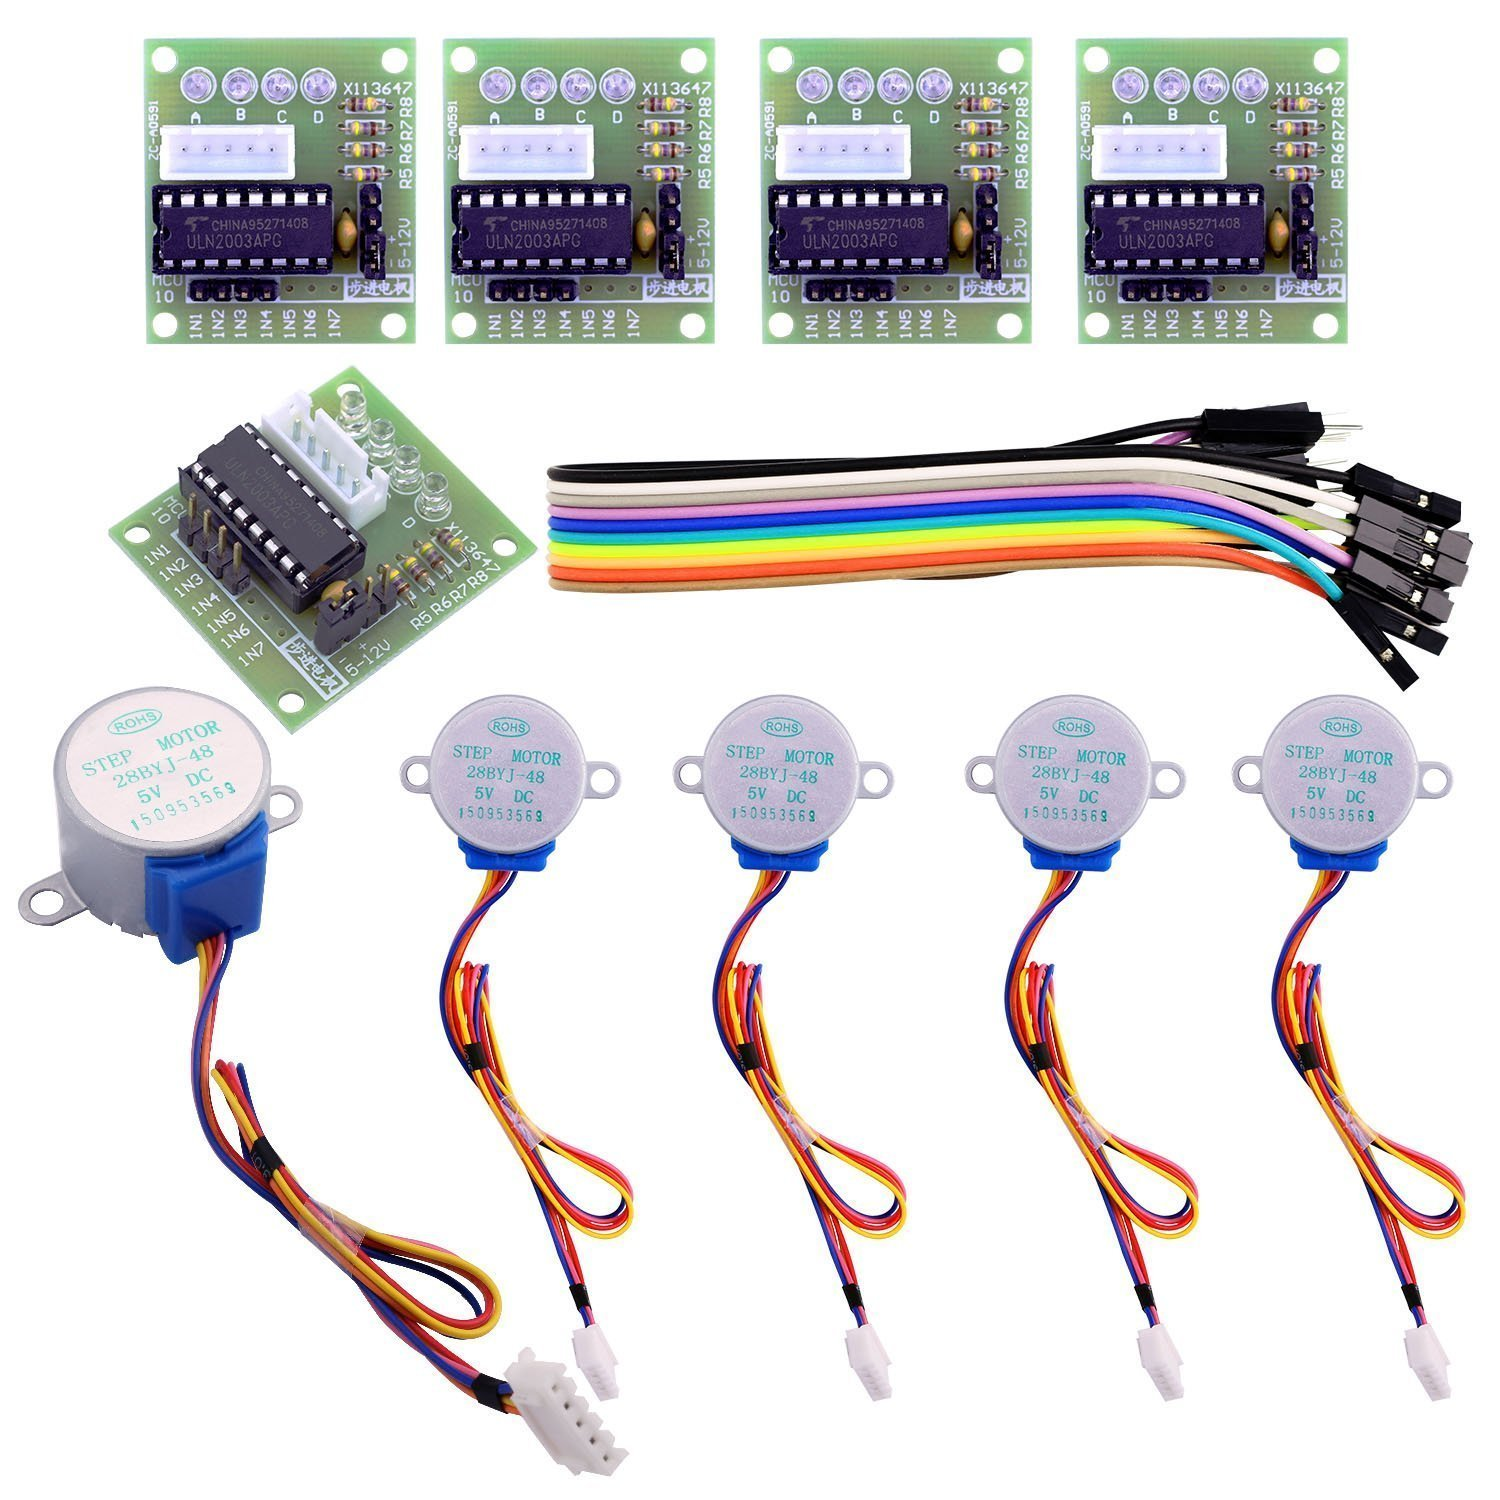 Easyget 5pcs Sets 28BYJ-48 ULN2003 5V Stepper Motor + ULN2003 Driver Board for Arduino 4332013348